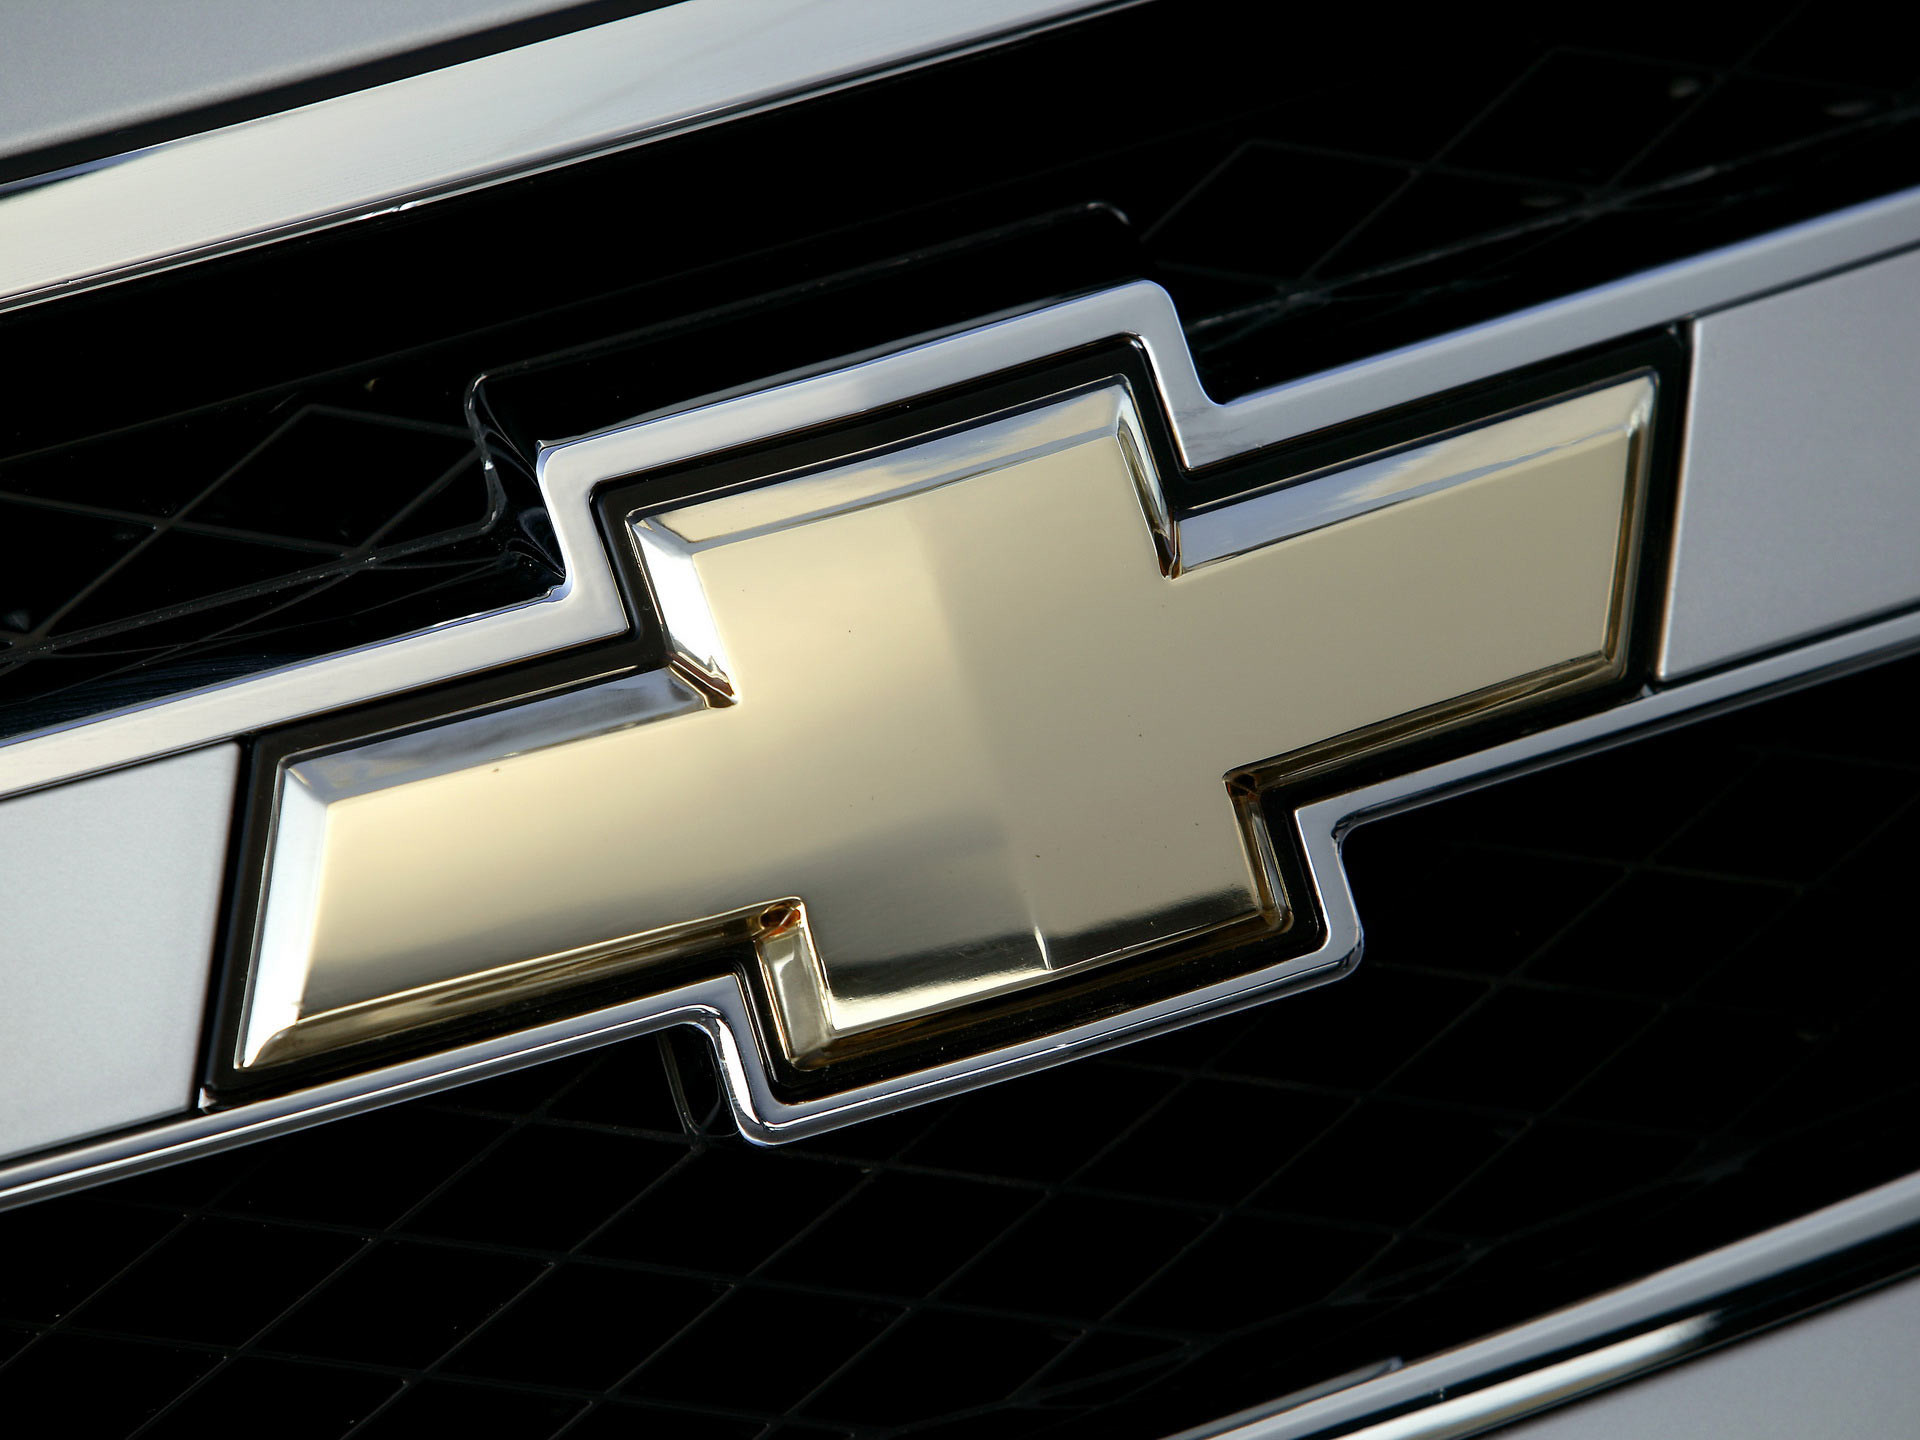 Chevrolet Wallpaper For Android #jyD